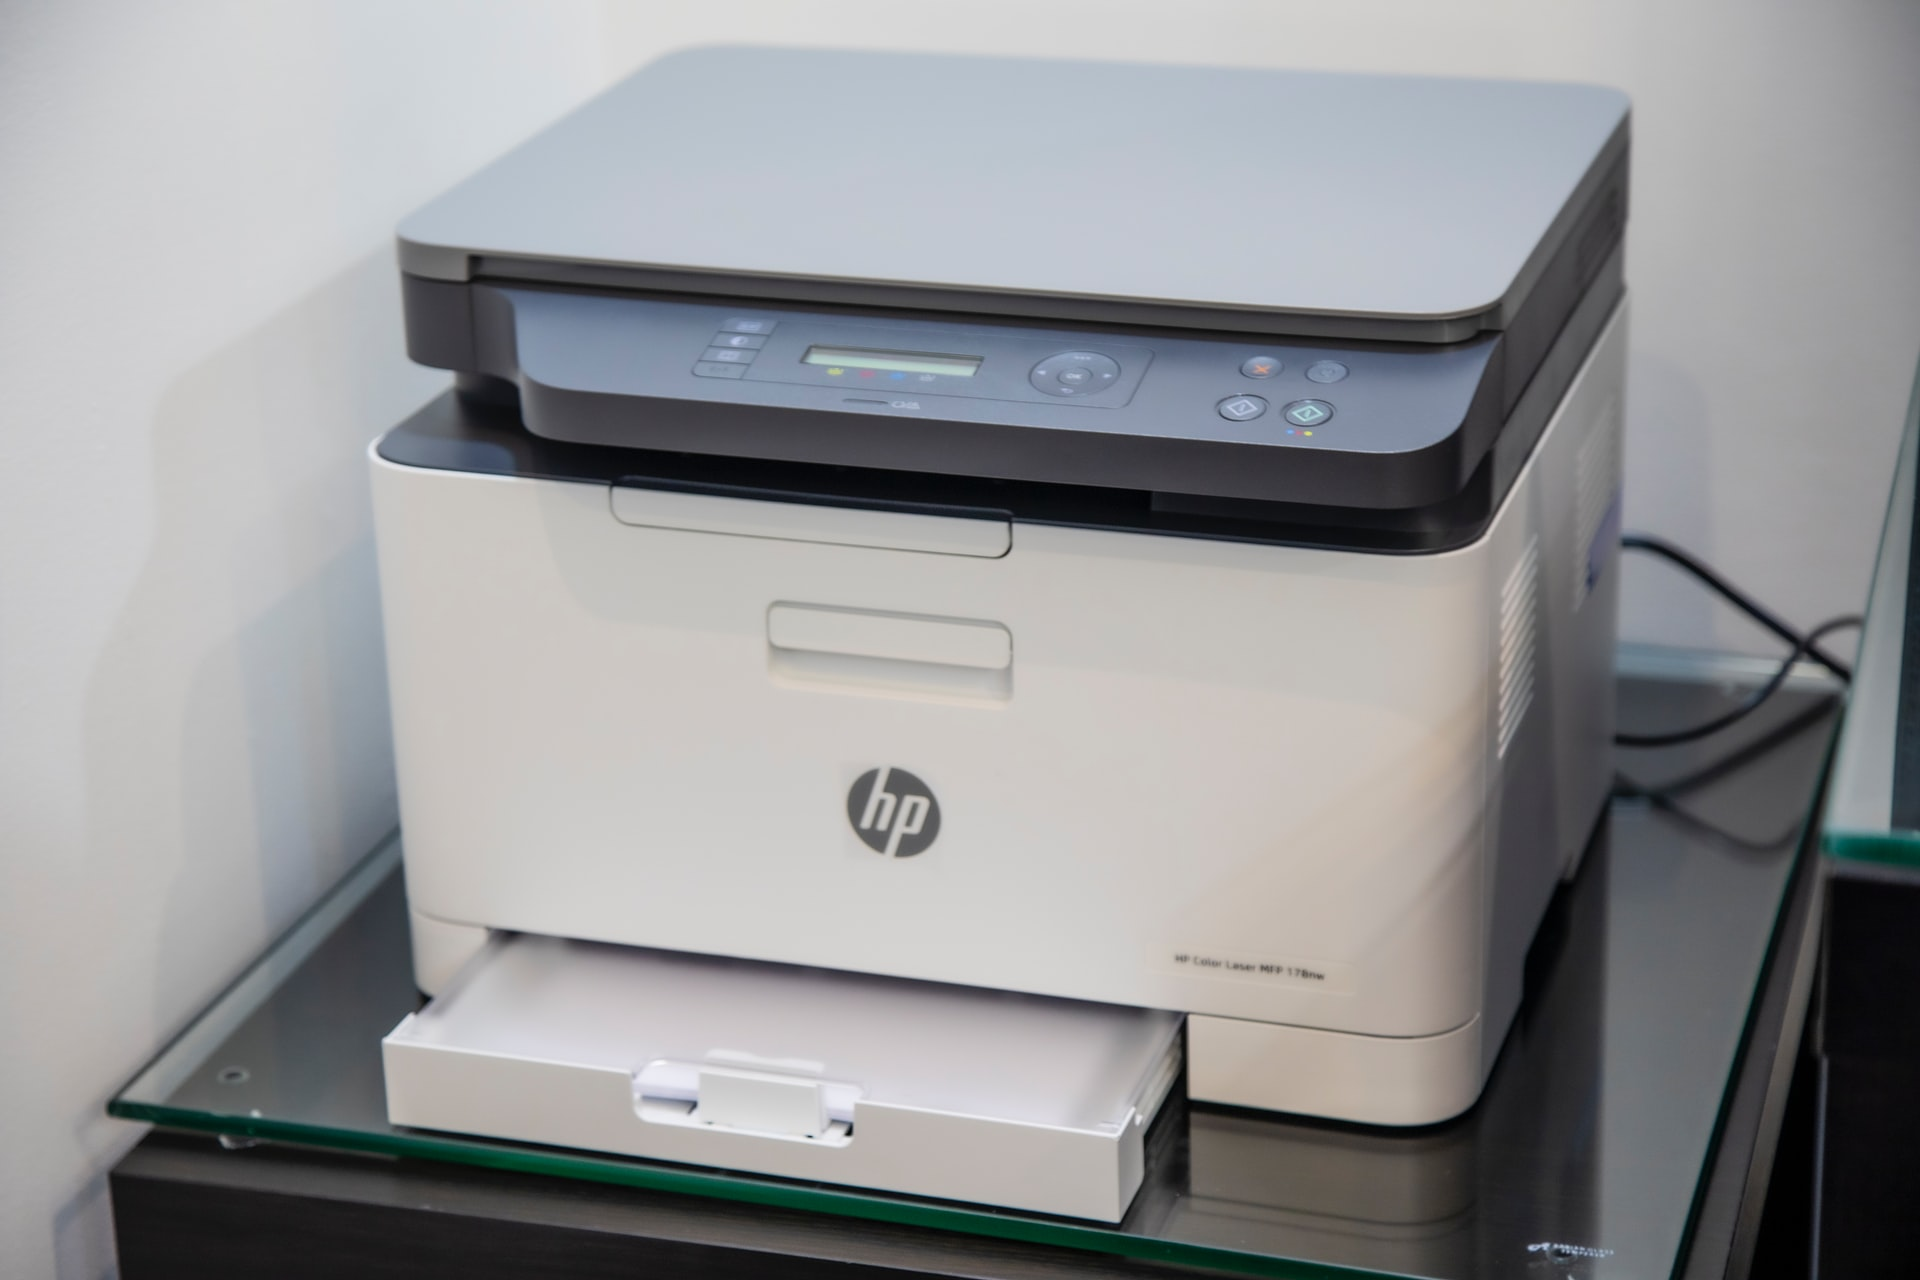 Printer. Make copies of important documents.